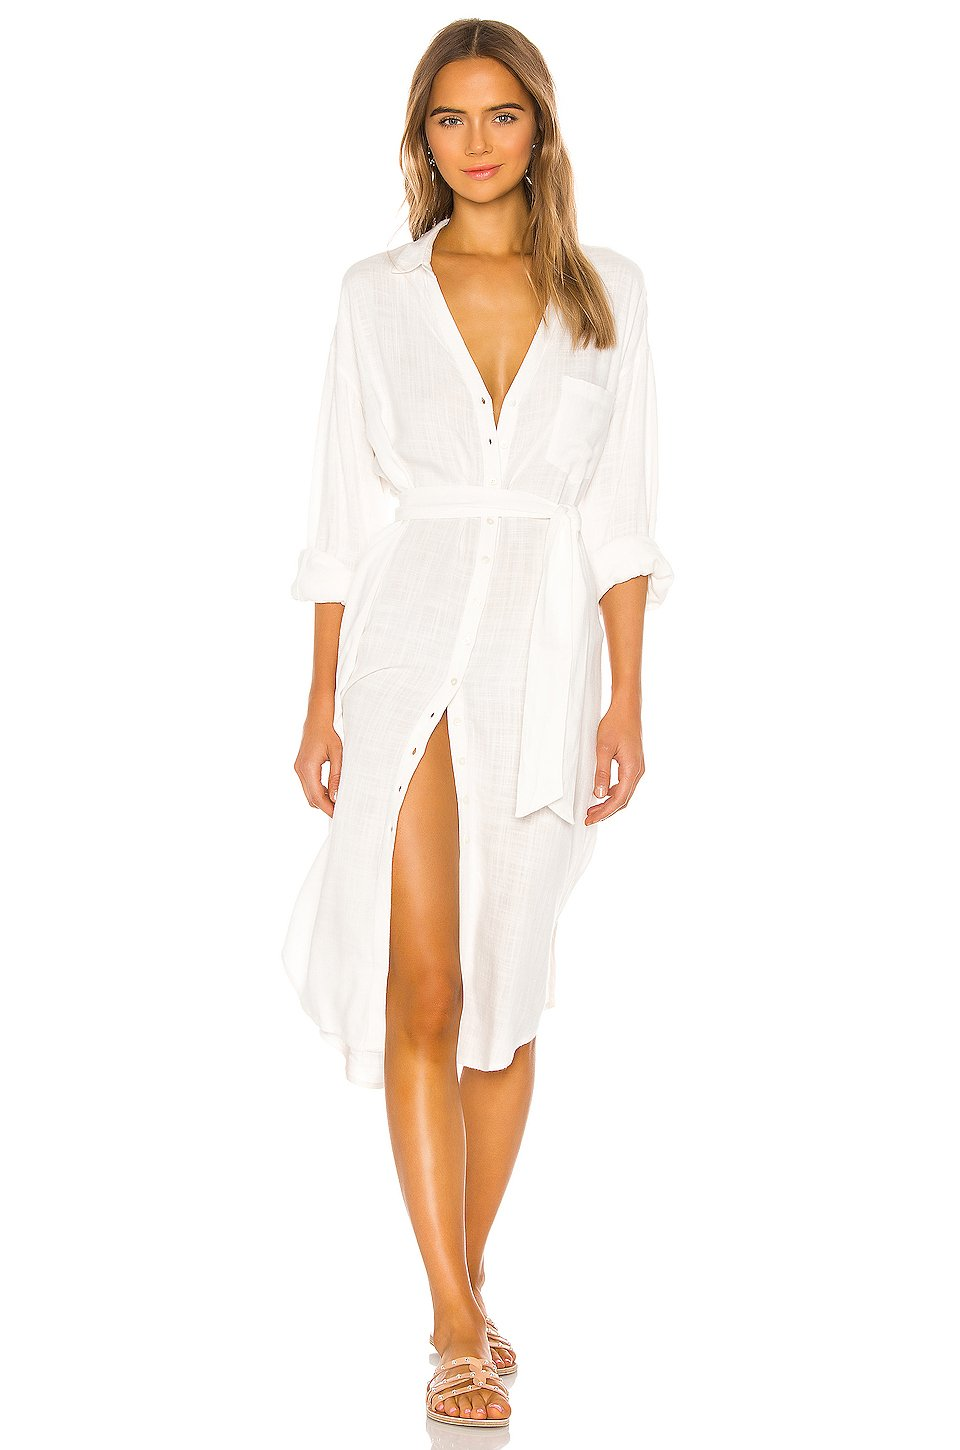 Revolve Your Perfect Long Sleeve Dresses Await Milled Alibaba.com offers 1,009 the revolve clothing products. milled